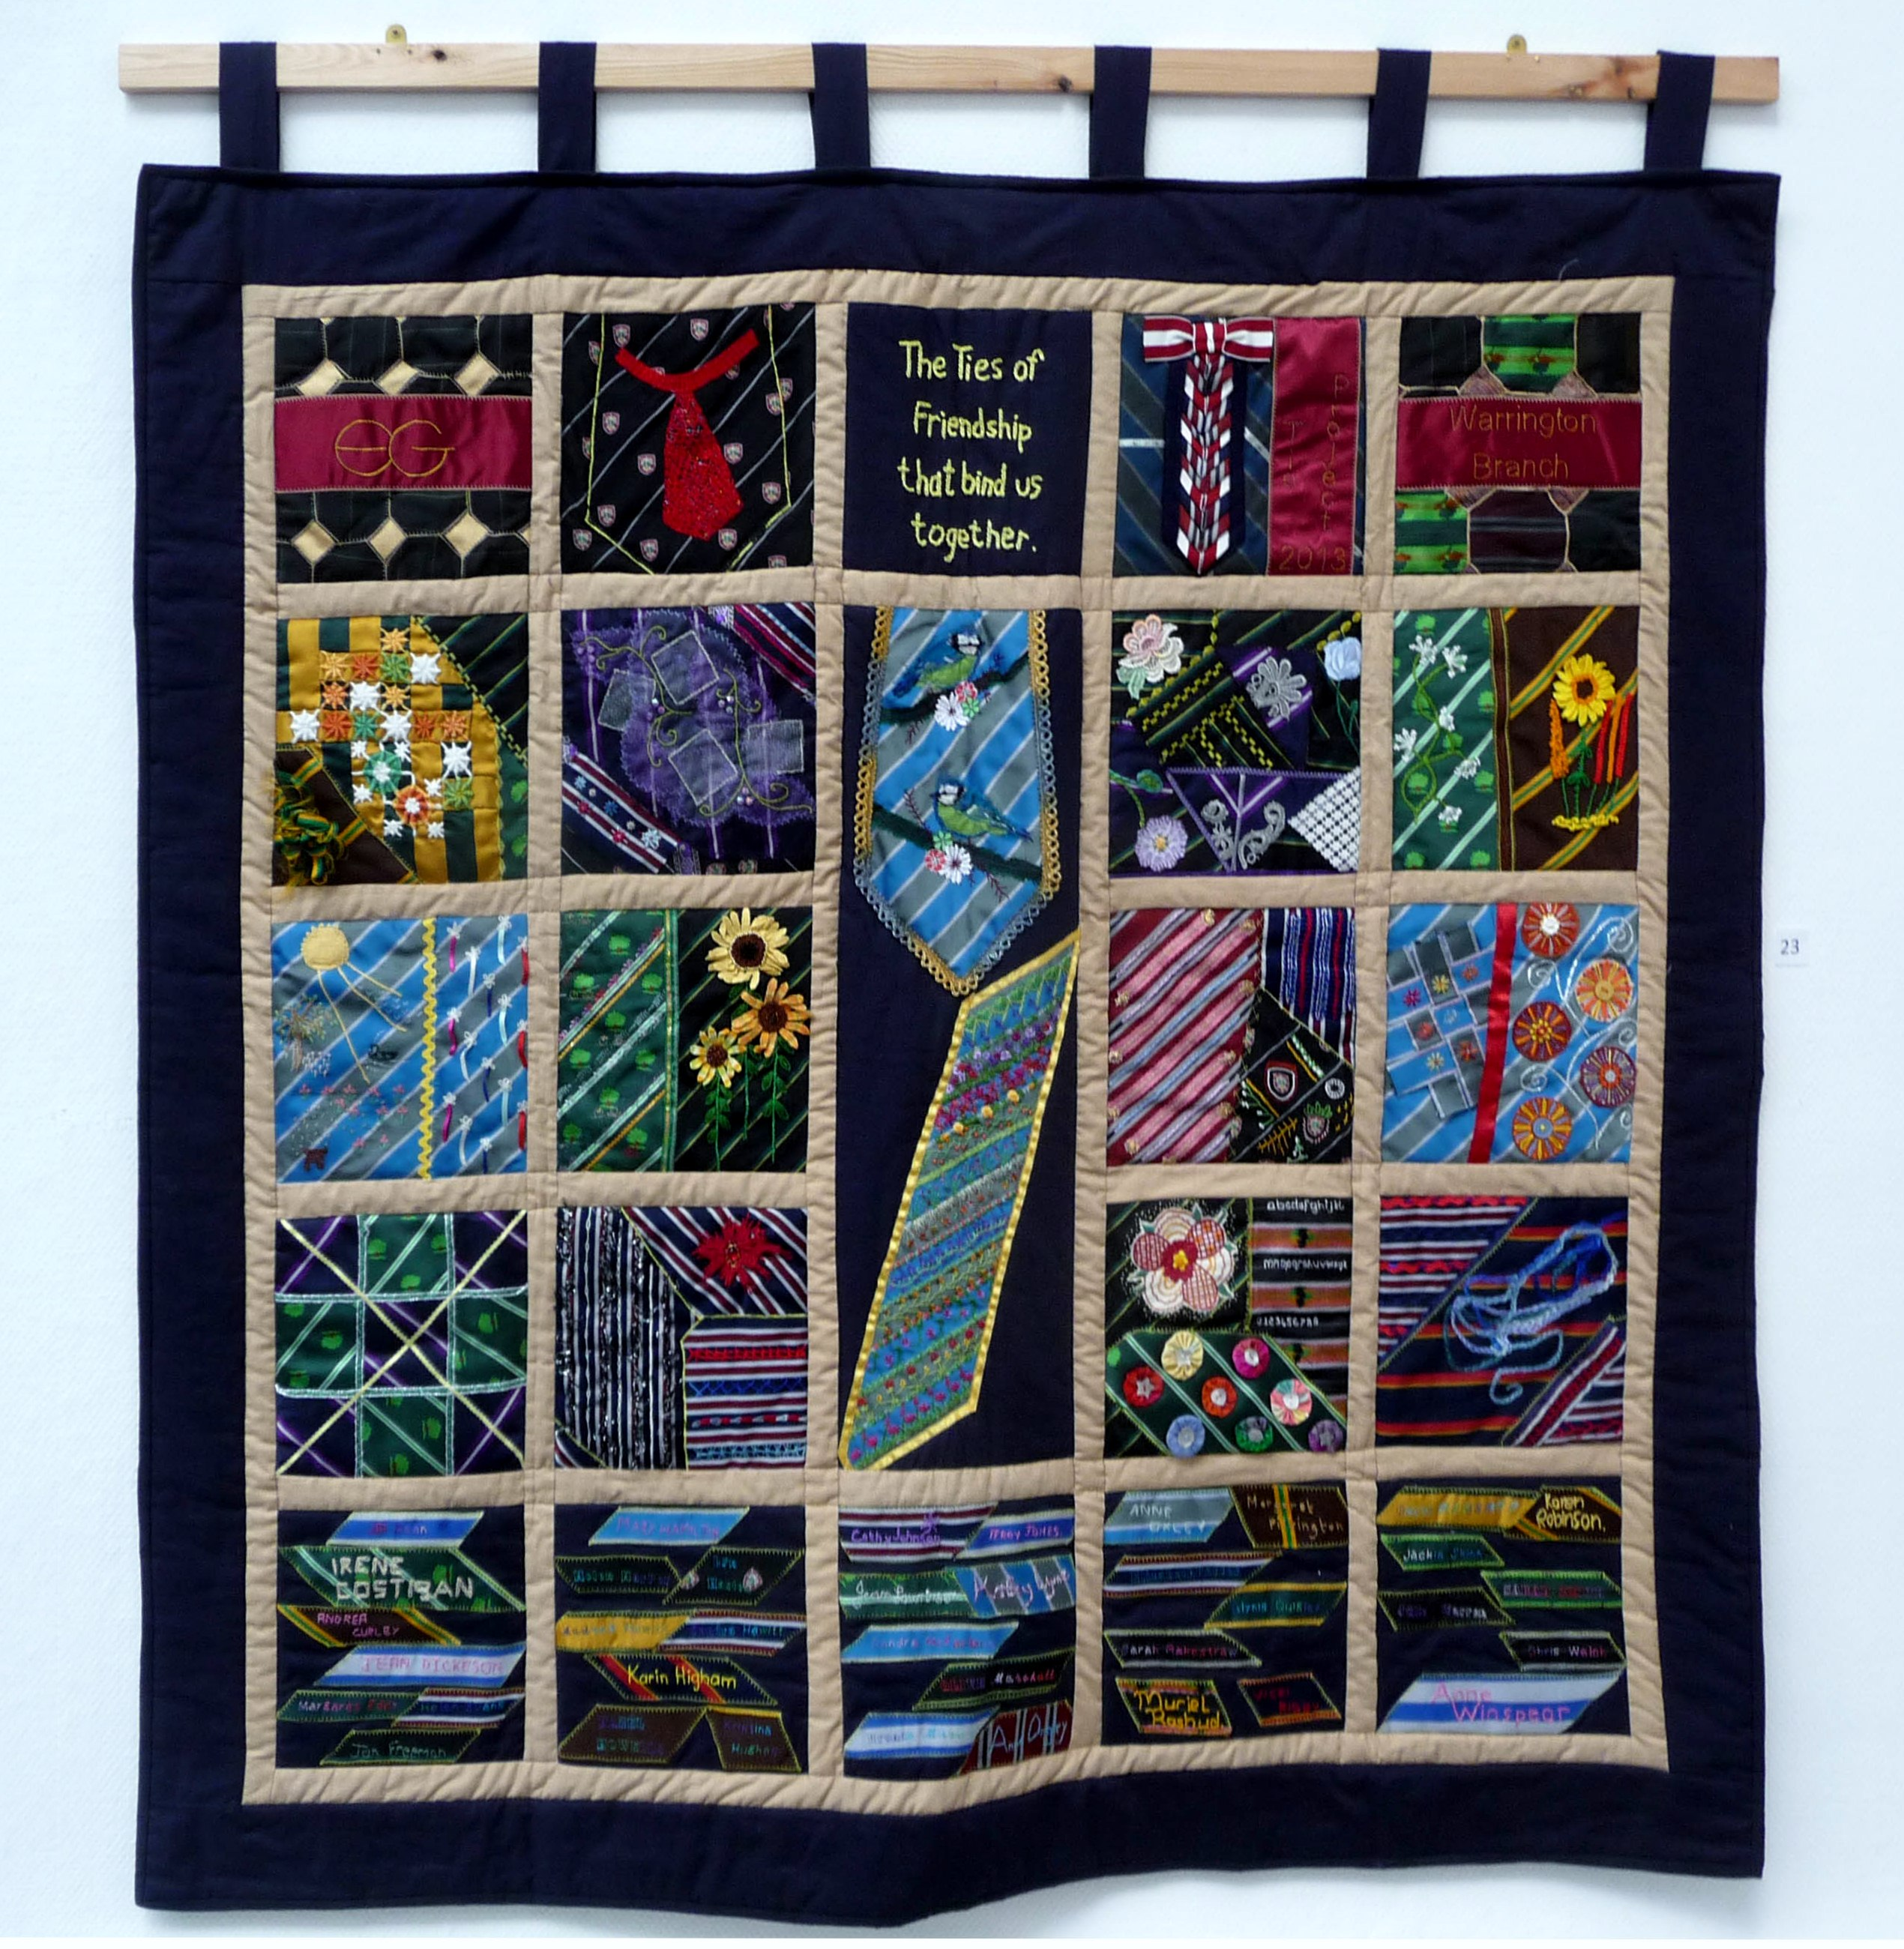 Wirral eg Branch Project, wall hanging joined in stitch